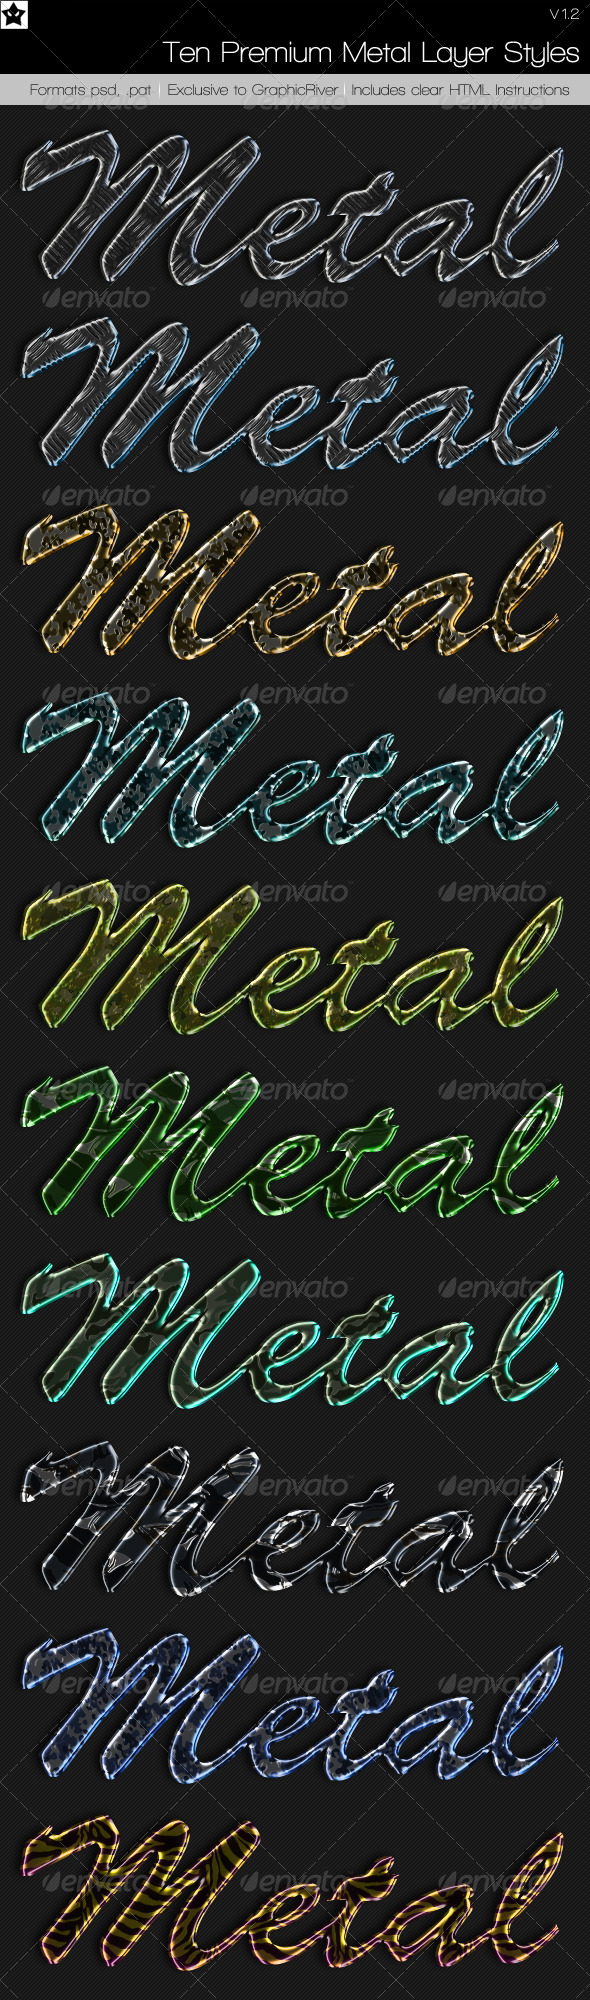 GraphicRiver 10 Premium Metal Layer Styles 246334